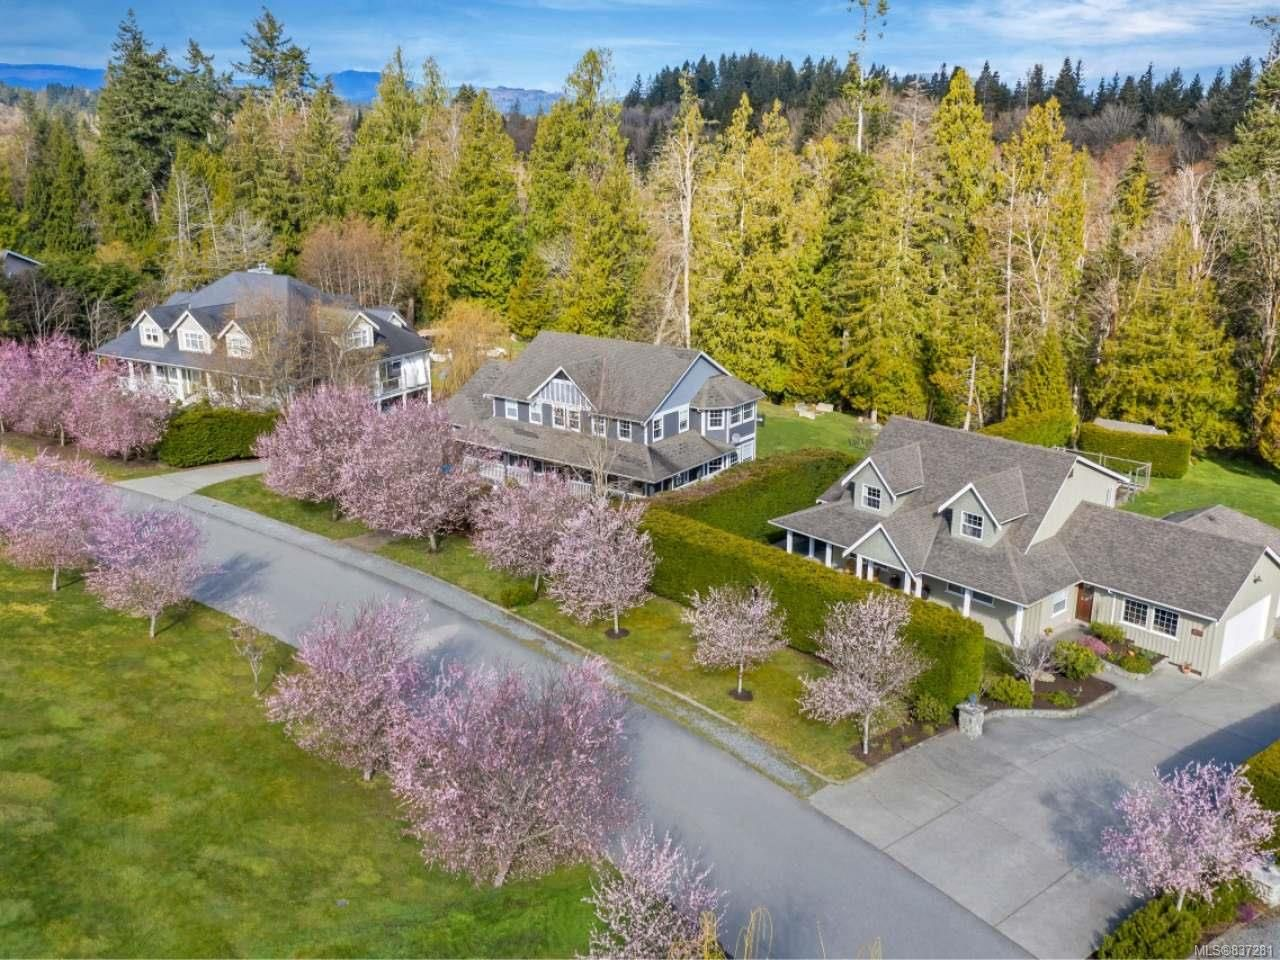 Photo 33: Photos: 925 Lilmac Rd in MILL BAY: ML Mill Bay House for sale (Malahat & Area)  : MLS®# 837281